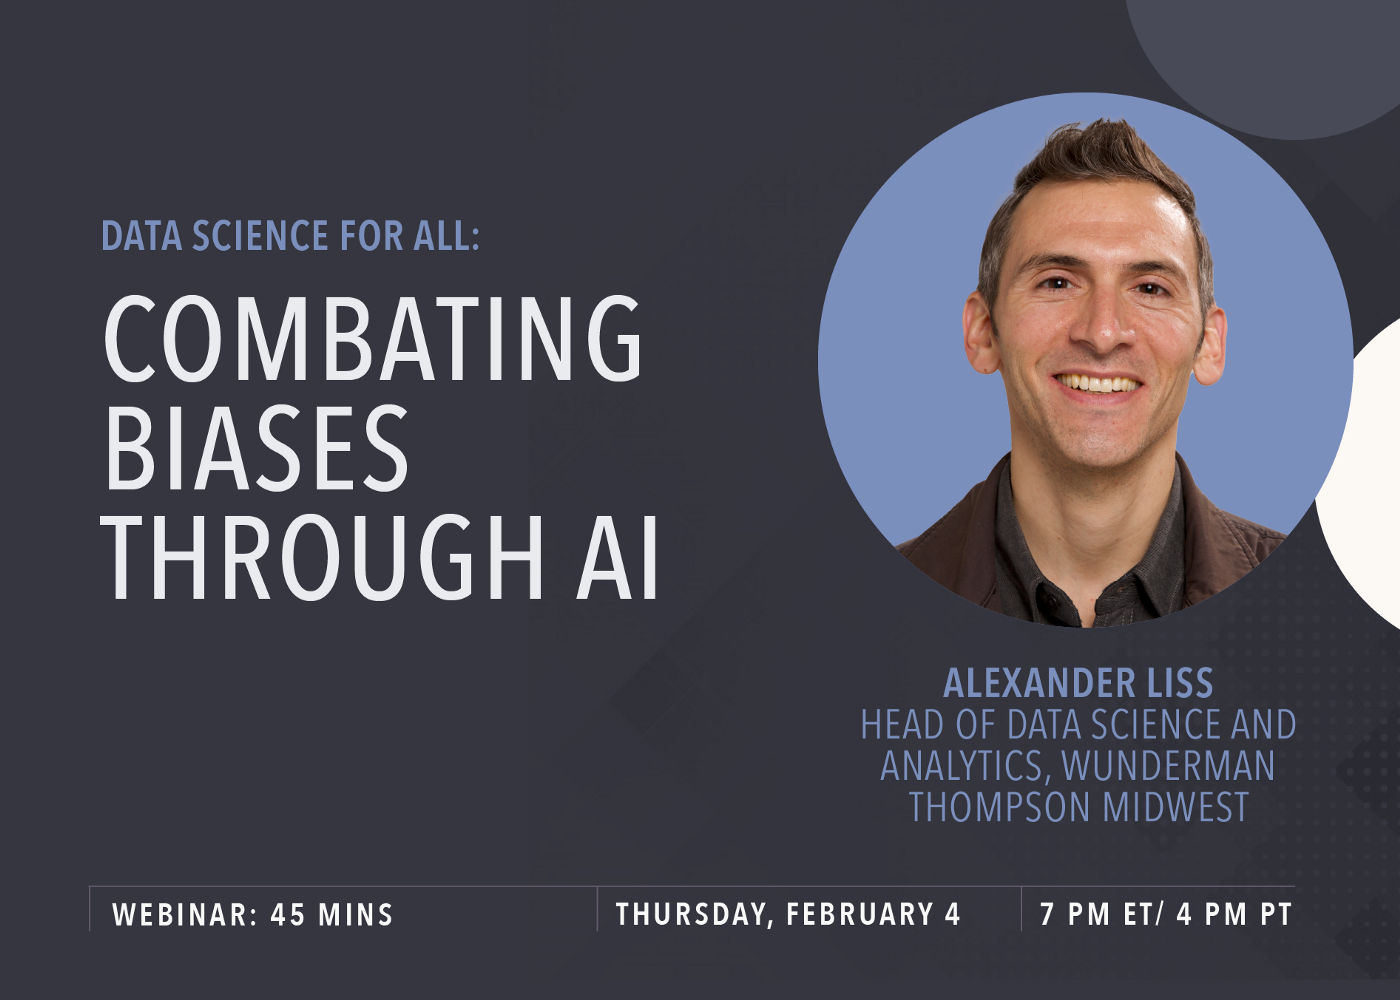 Data Science for All: Combating Biases with AI featuring Alex Liss